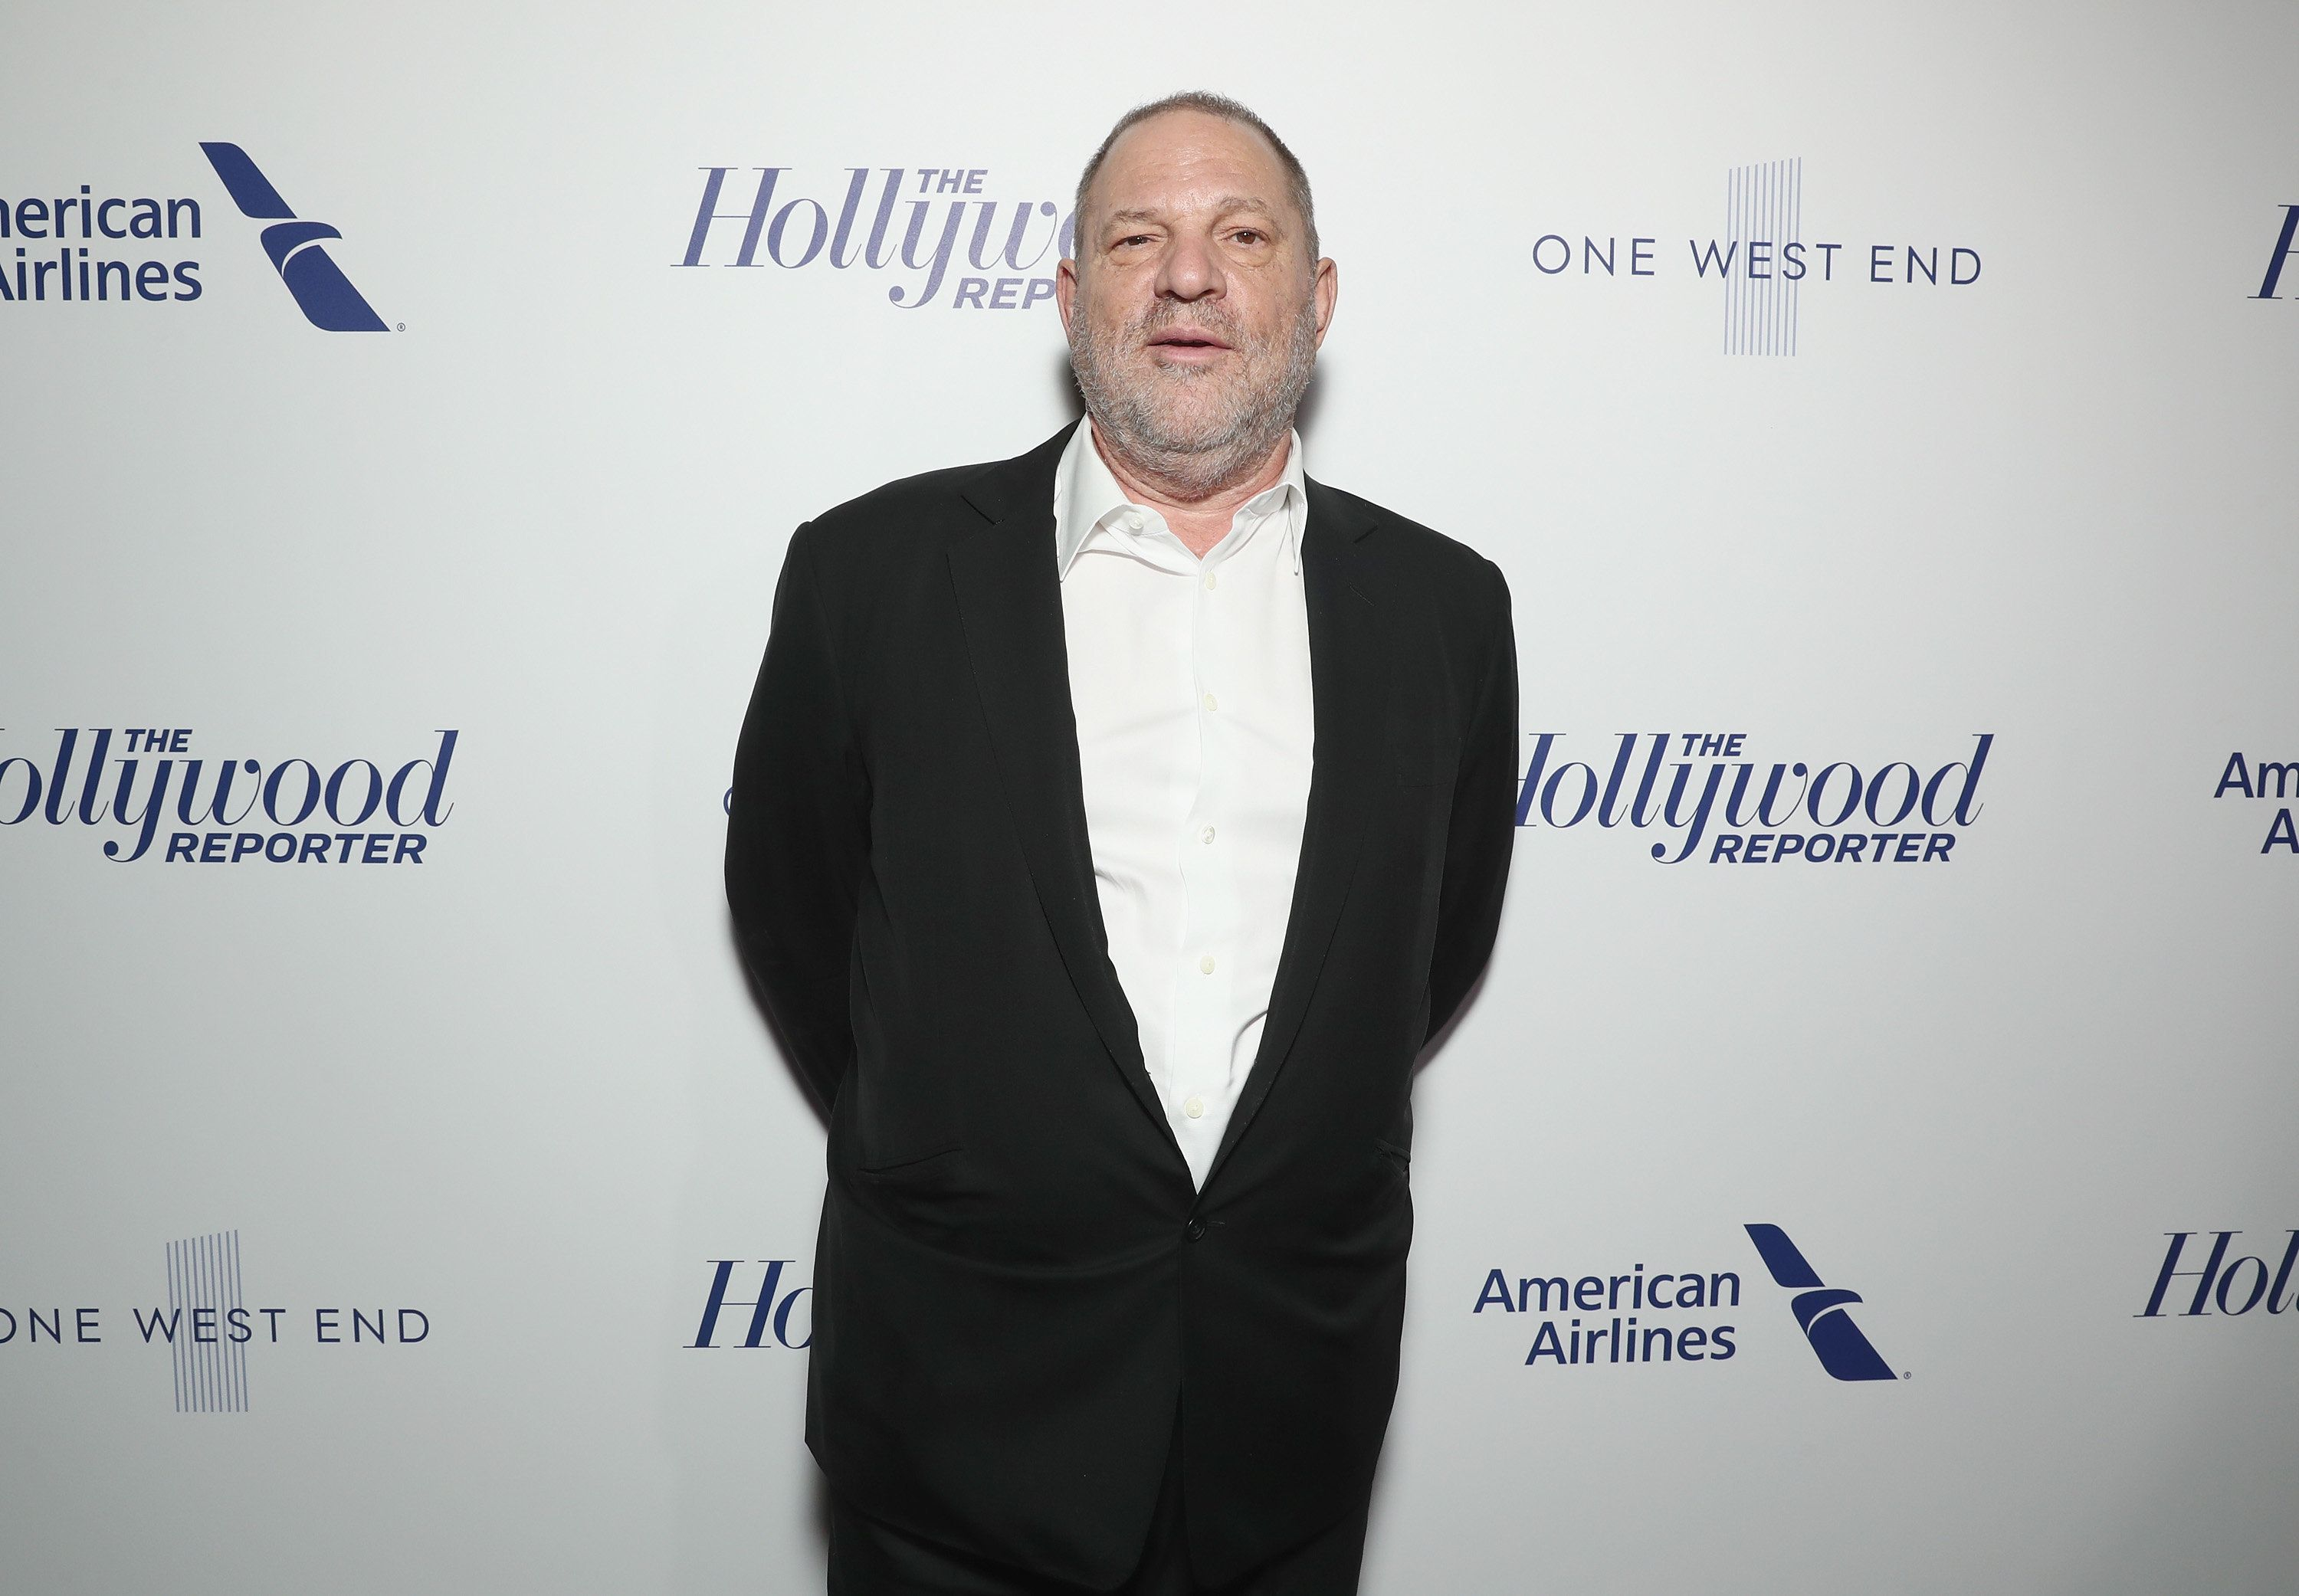 Bob Weinstein helped hide brother Harvey's misconduct